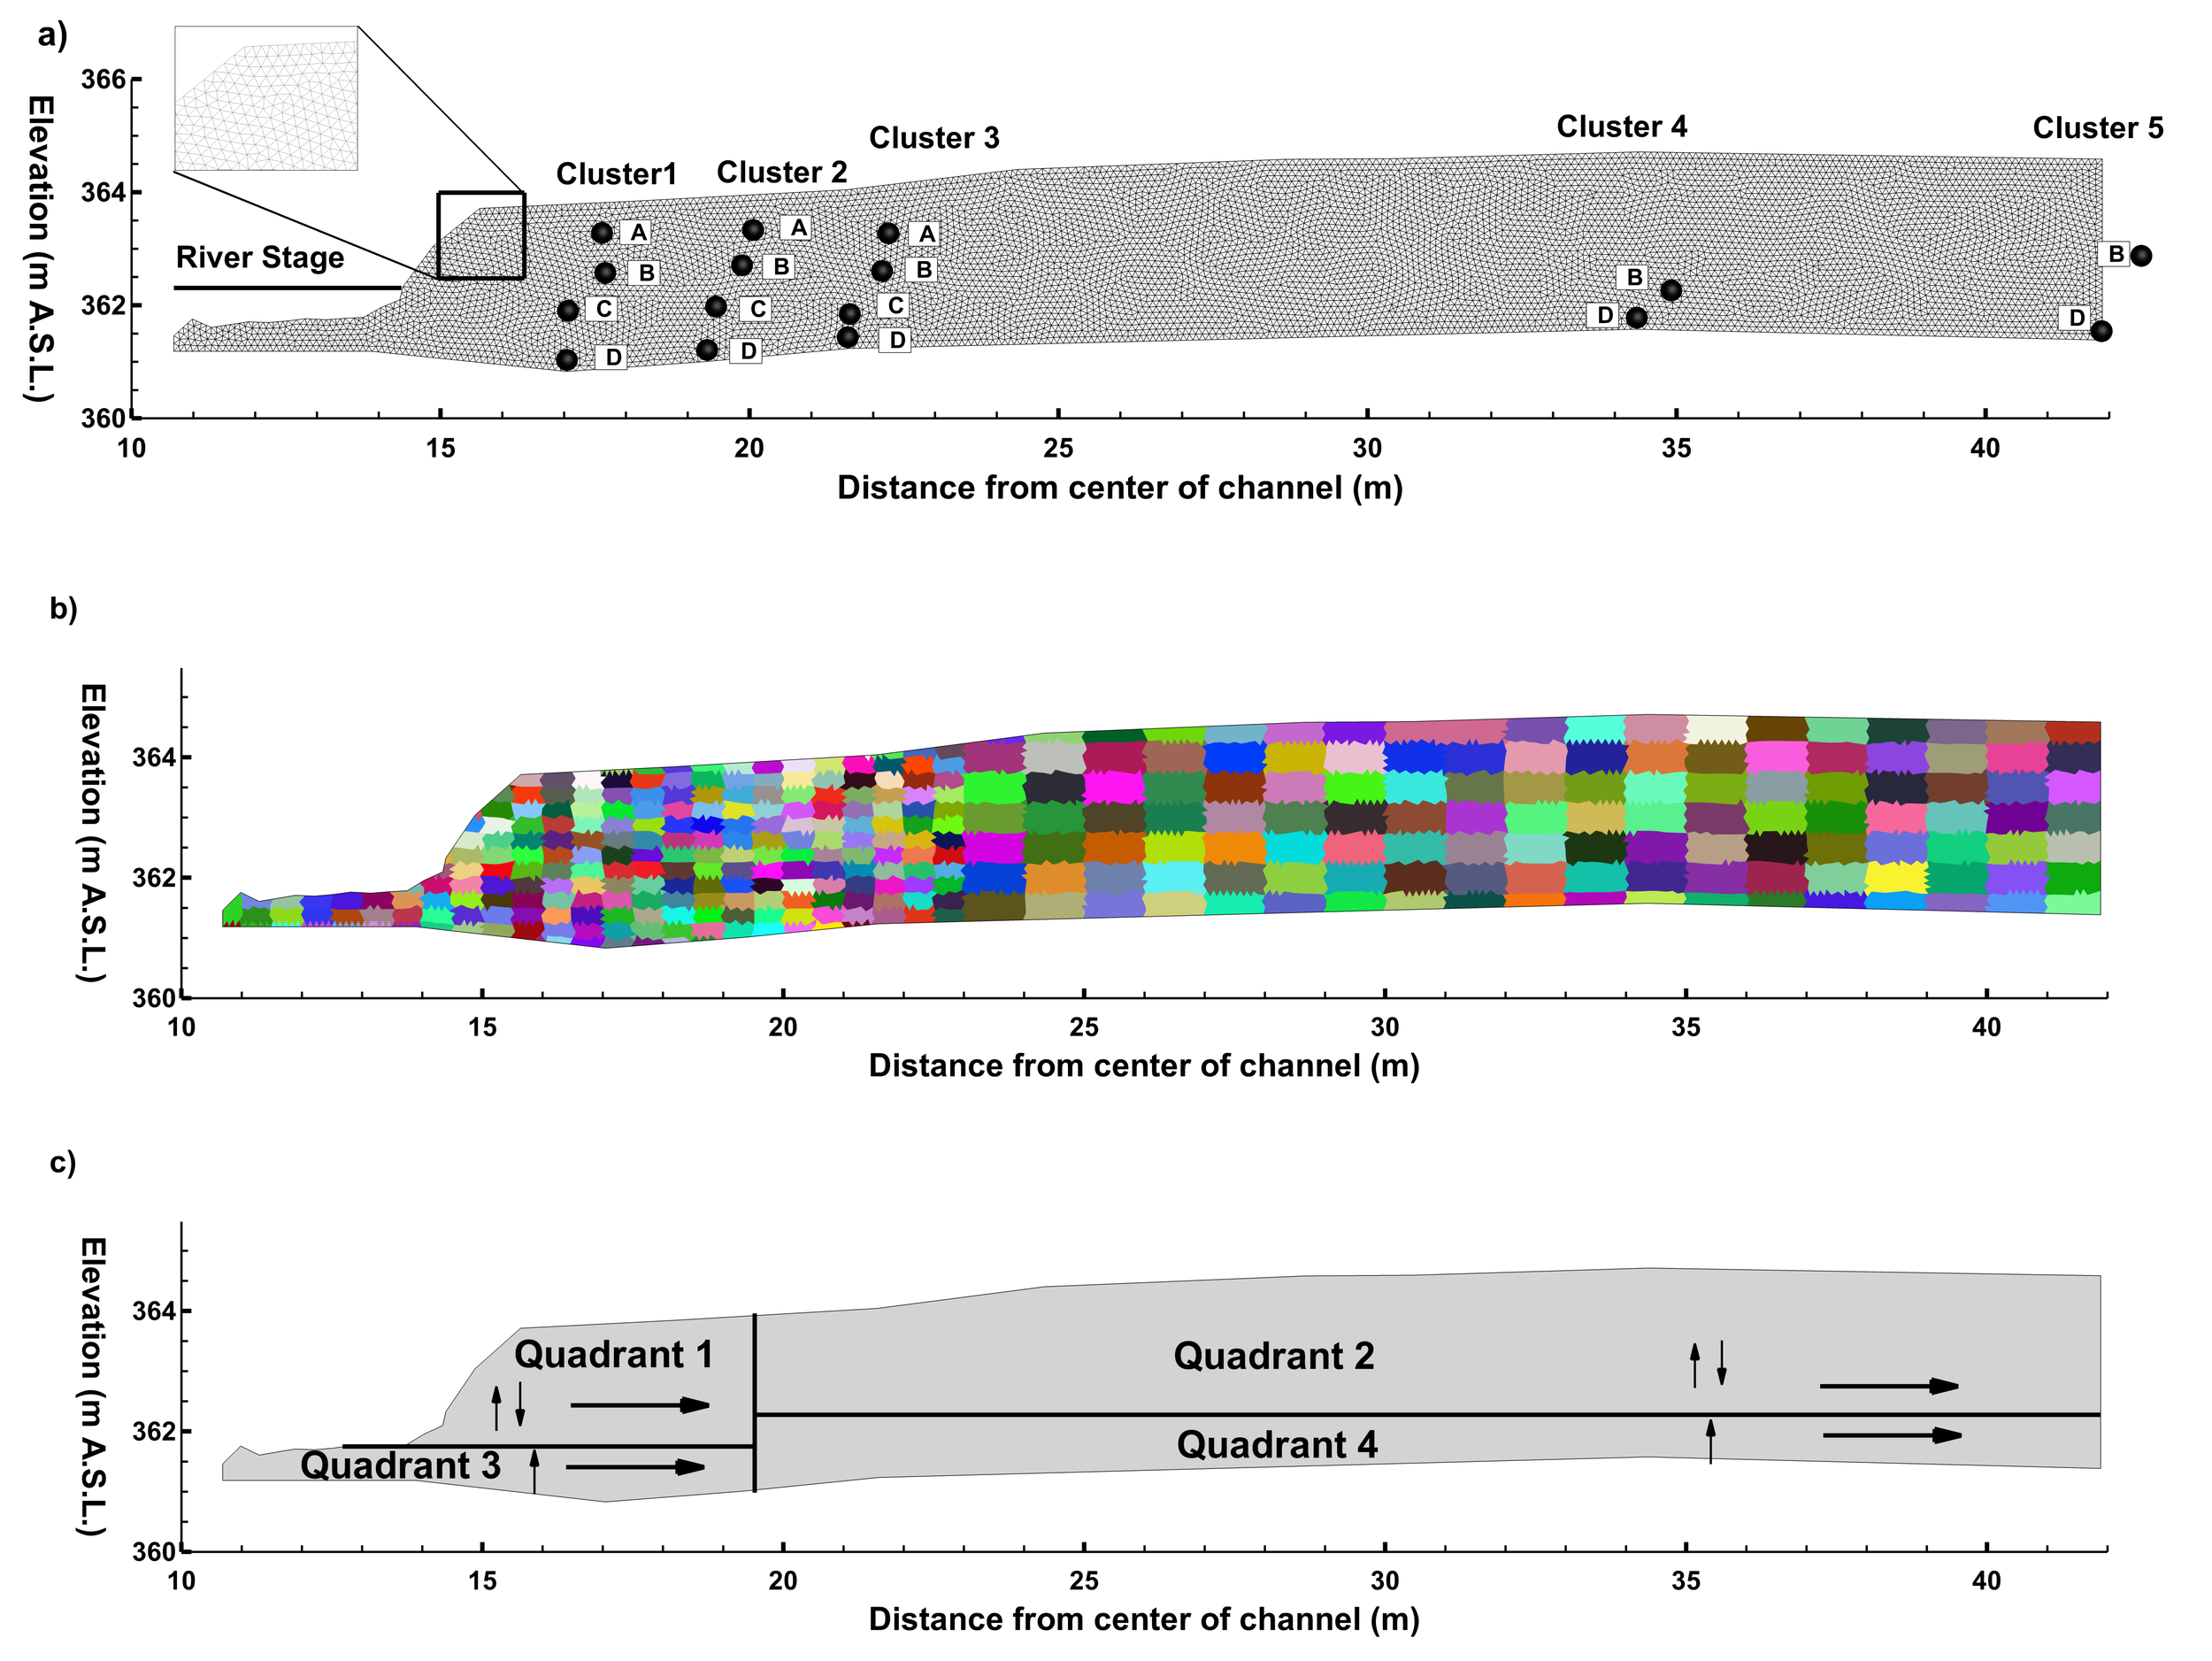 Figure 5. a) Finite element mesh including boundary conditions and material zonation based on the hydrostratigraphic interpretation of the site; b) 365 material zones for calibration of hydraulic conductivity (colouration indicates zone location and not material properties); and c) quadrants to which different fining preferences (shown by arrow directions) for model calibration were assigned.